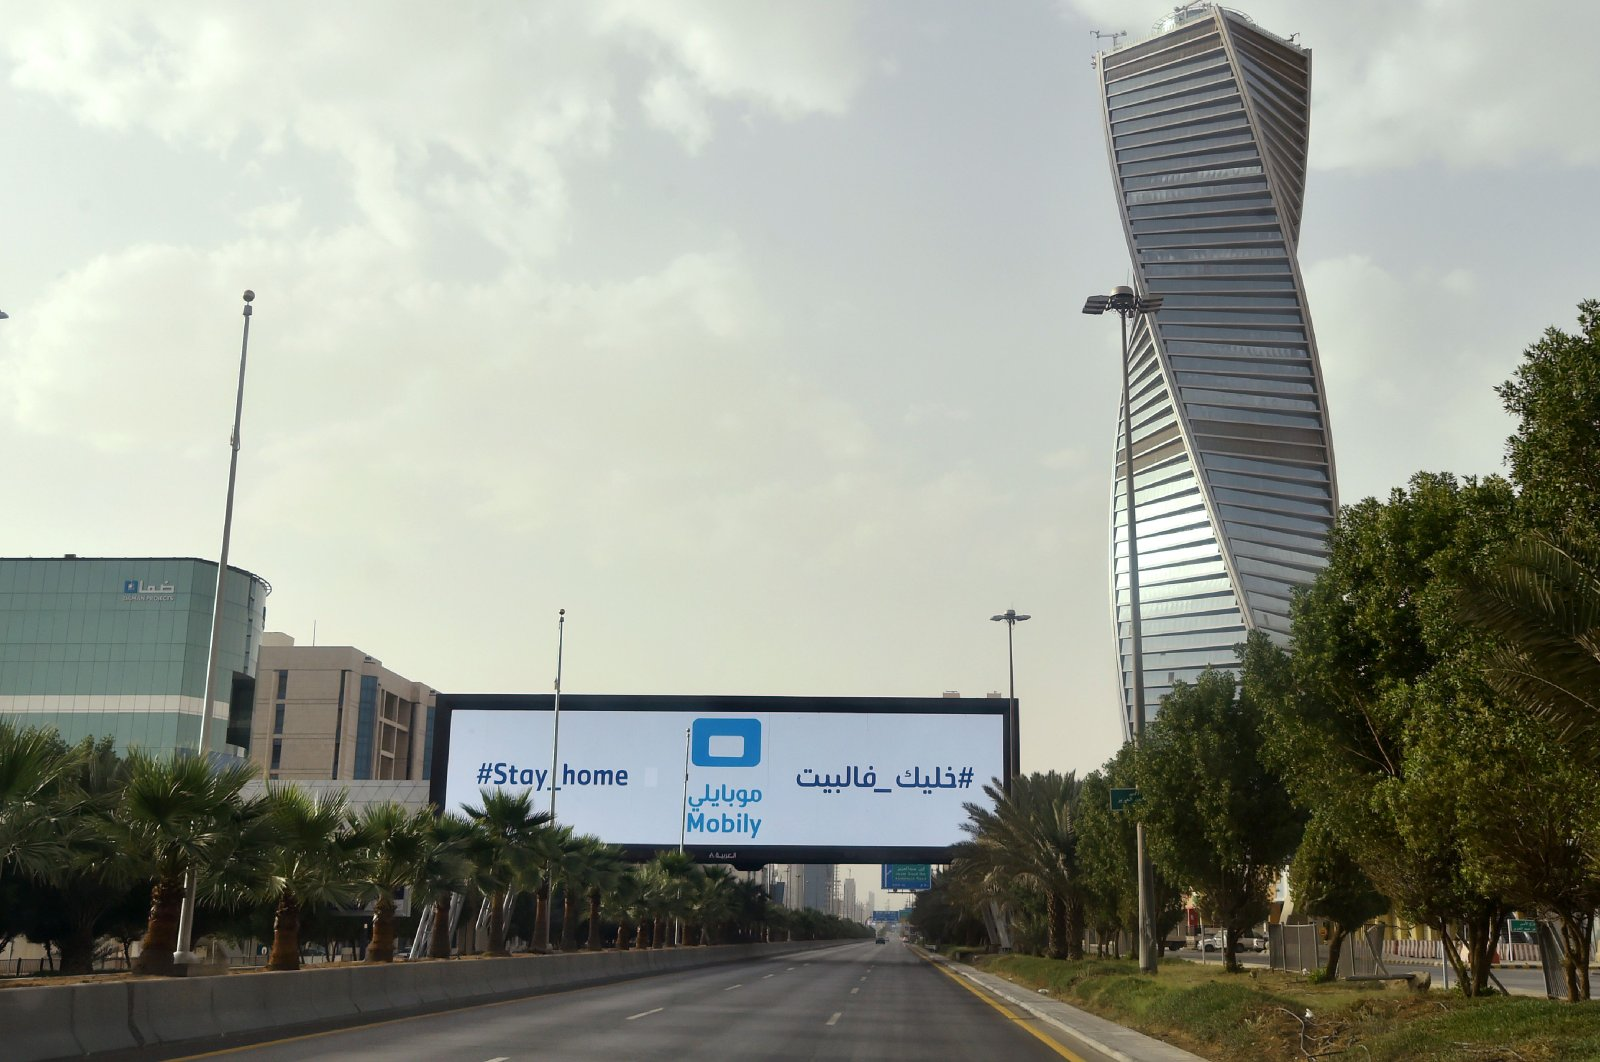 A picture taken on March 26, 2020, shows a billboard in an empty King Fahad main street in the Saudi capital Riyadh. (AFP Photo)